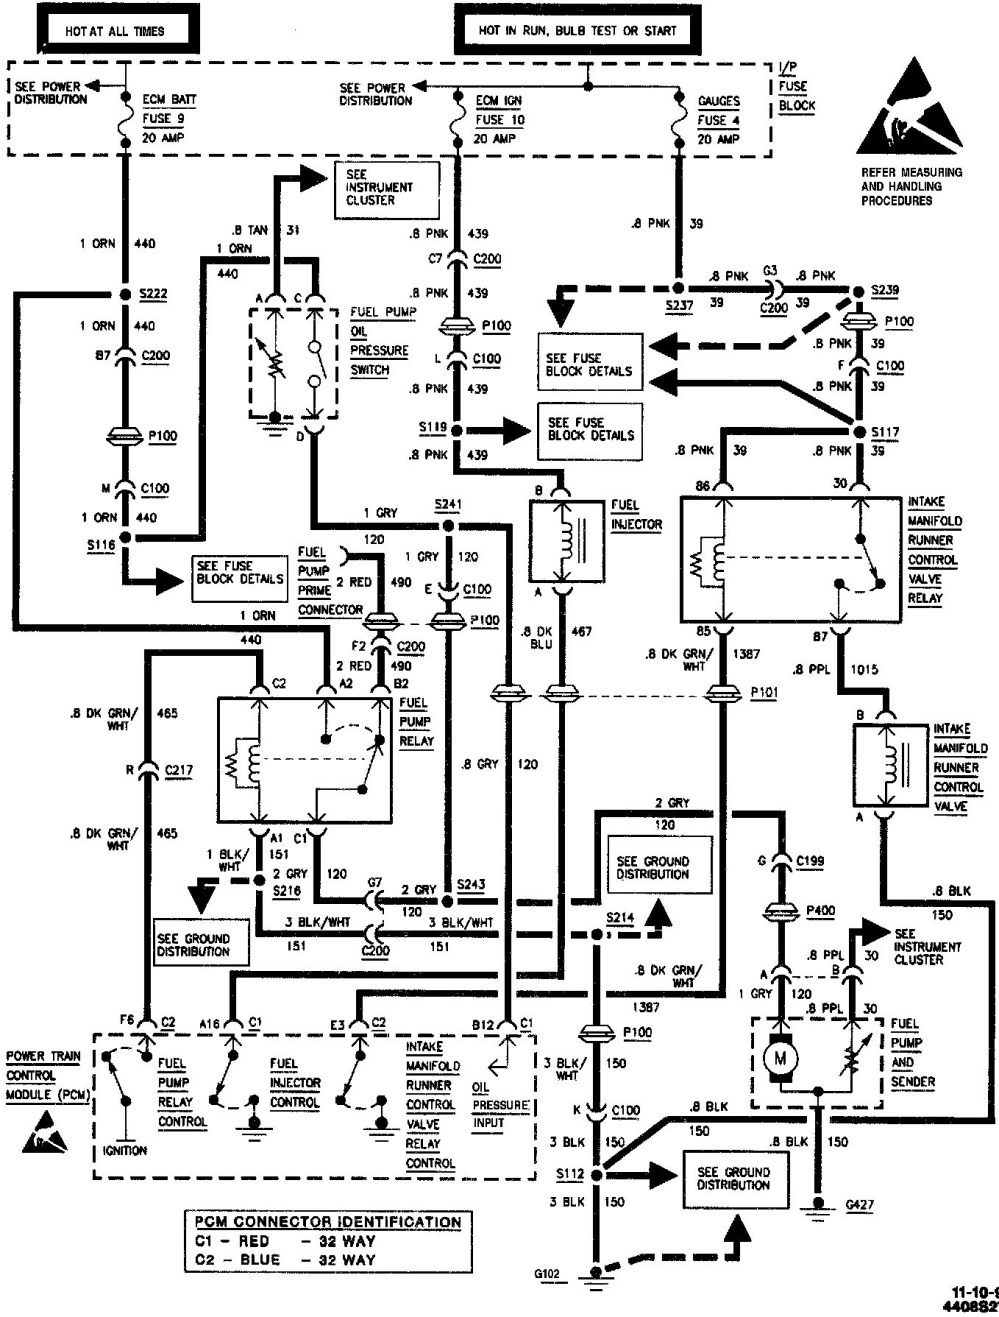 medium resolution of 2002 s10 wire harness wiring diagram paper 1999 chevy s10 wiring harness 1988 chevy s10 wiring